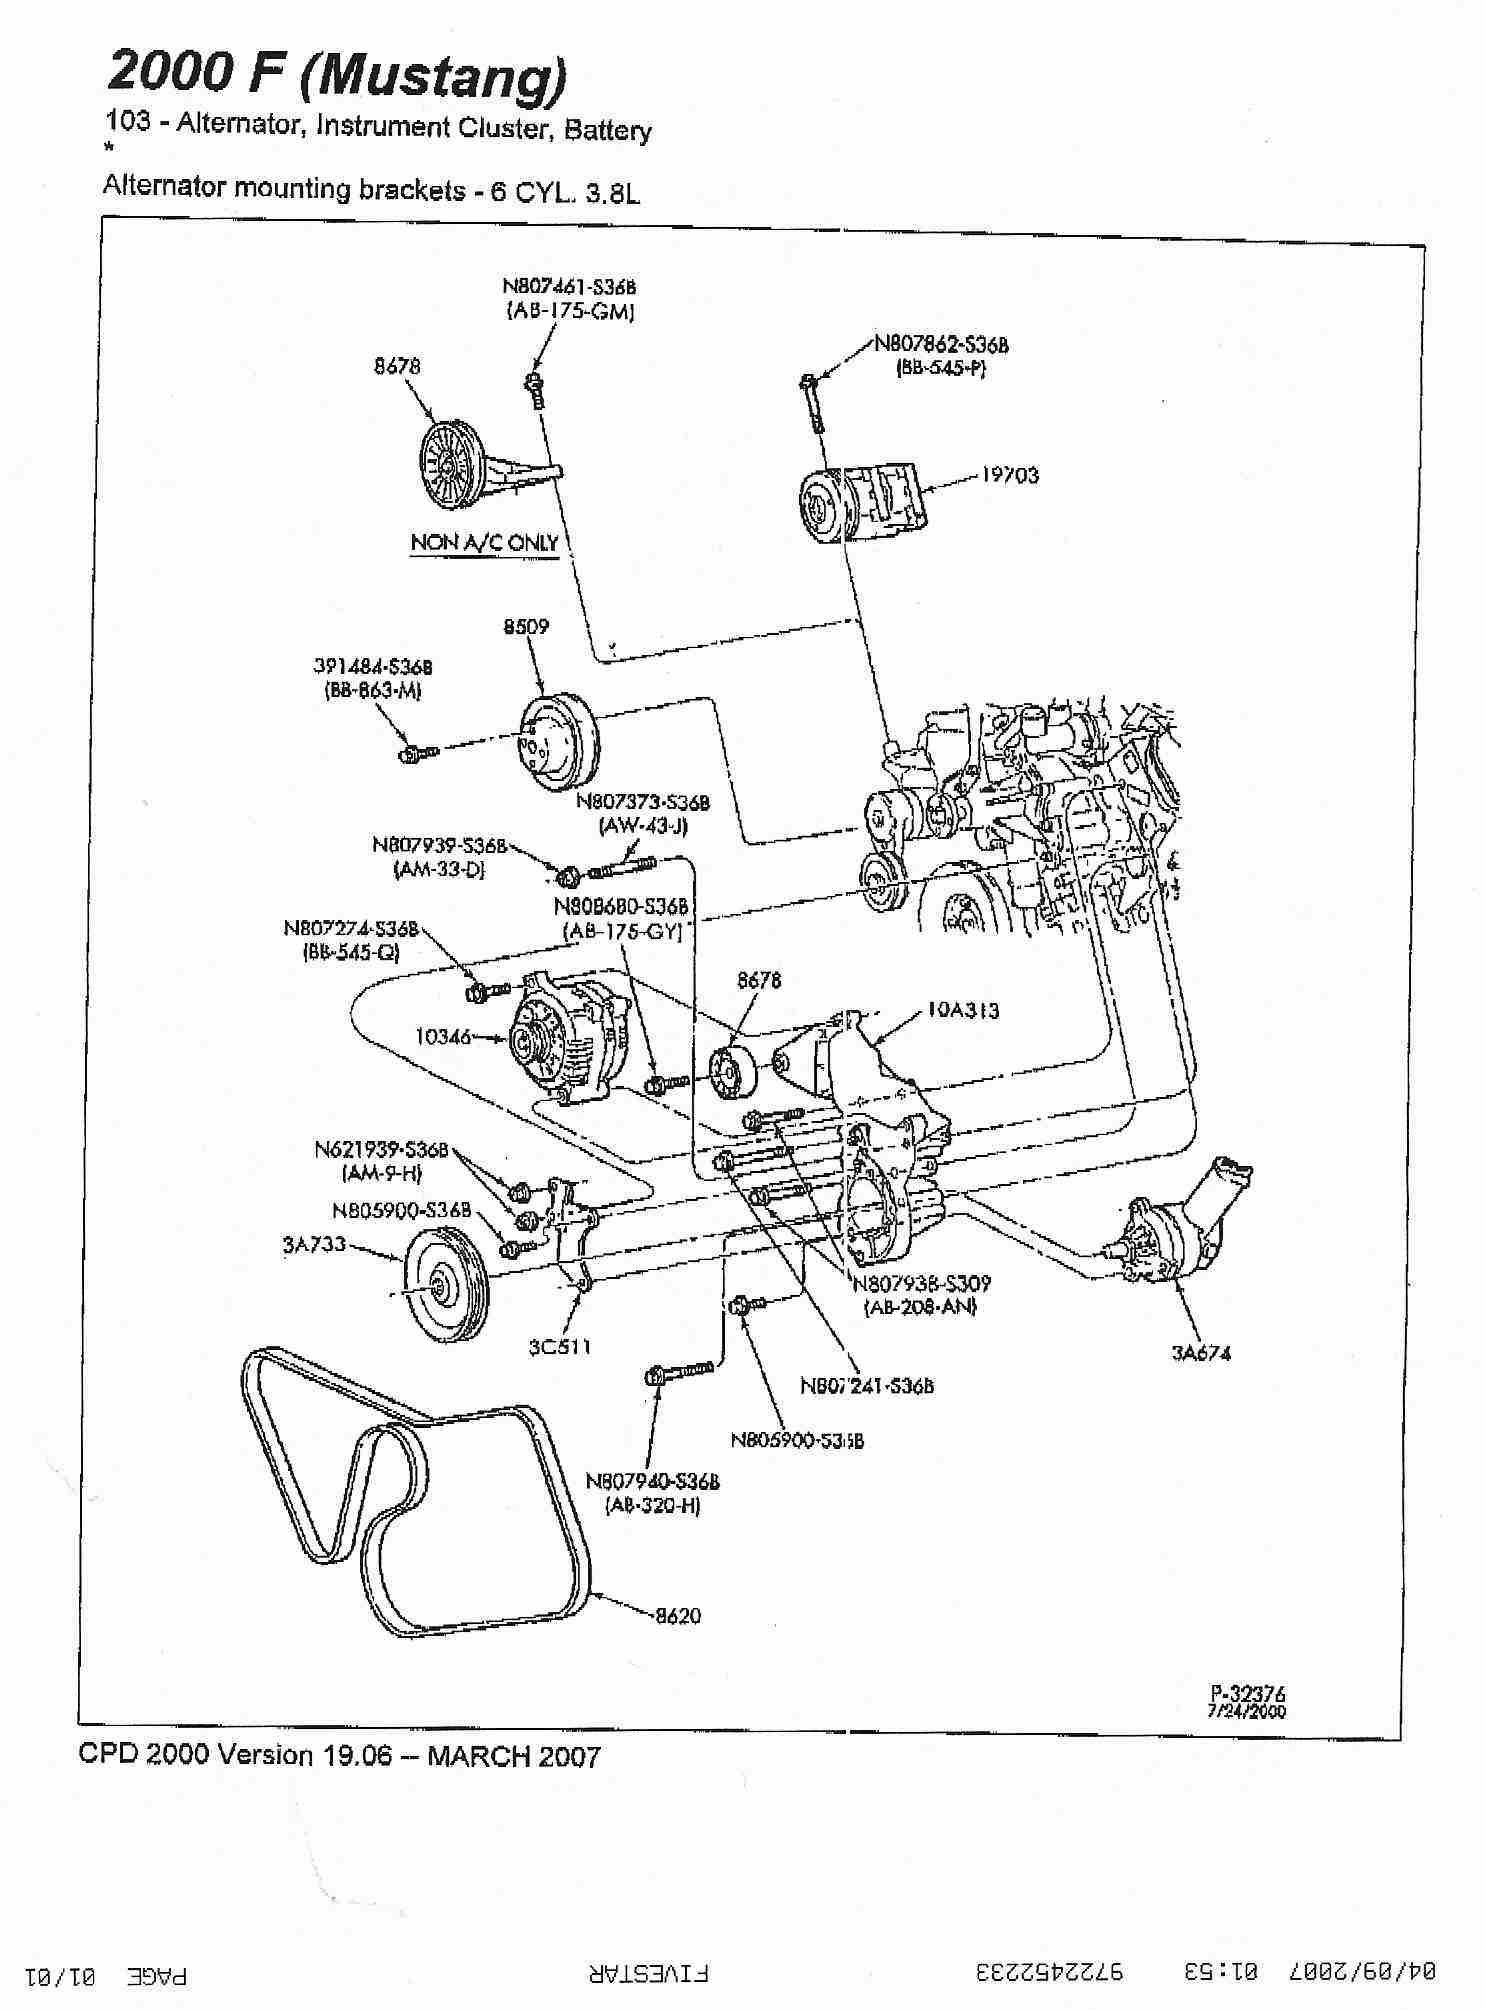 2010 Ford Mustang Engine Diagram Wiring Diagram